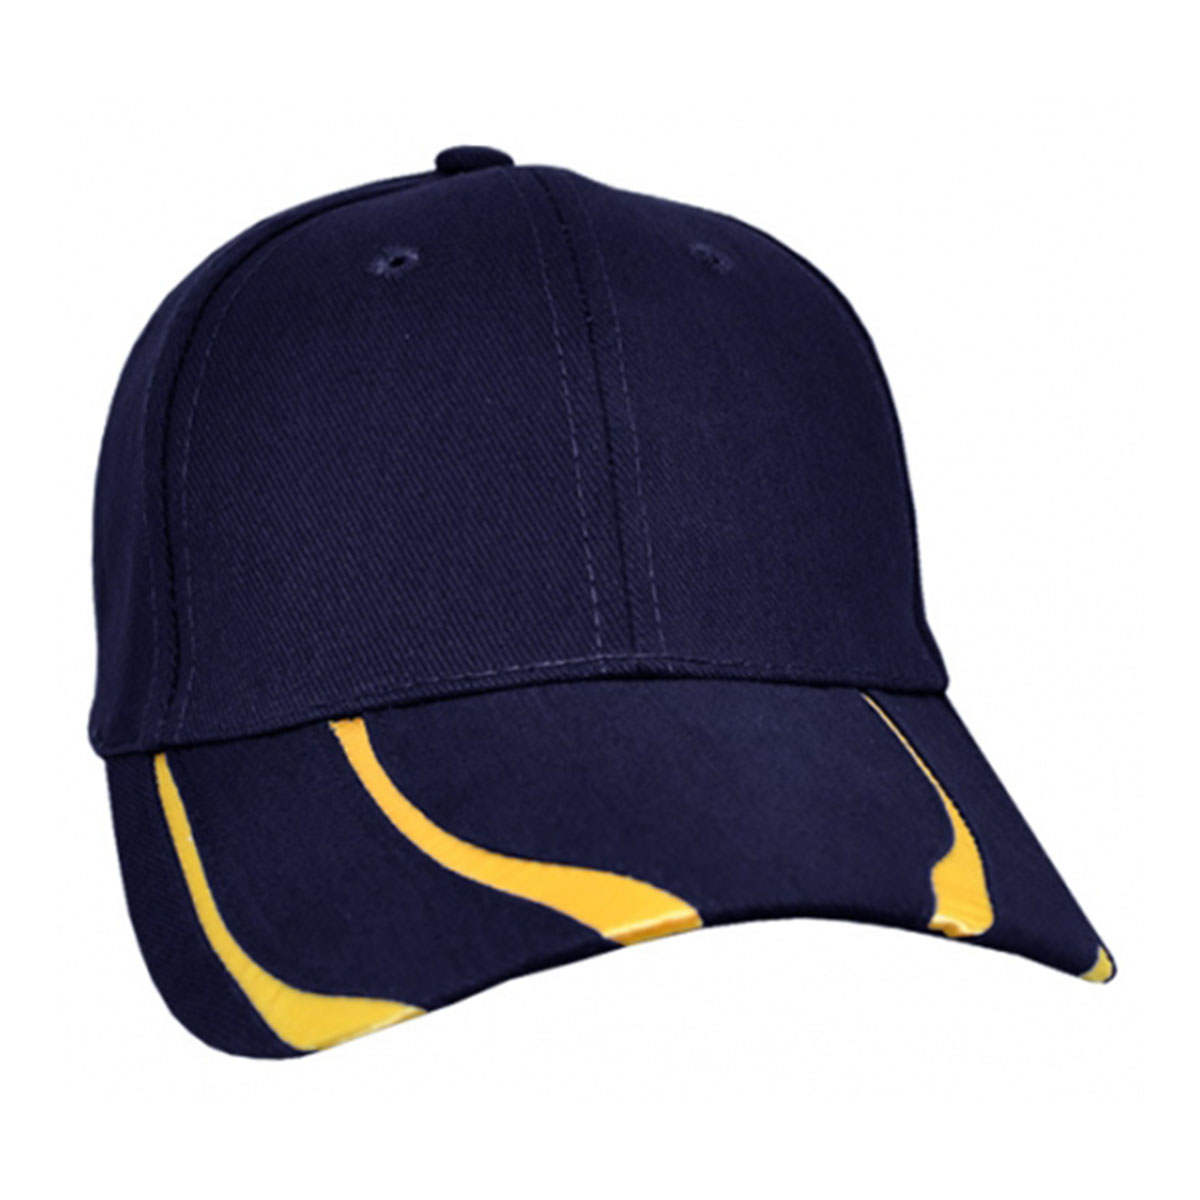 Striker Cap-Navy / Gold